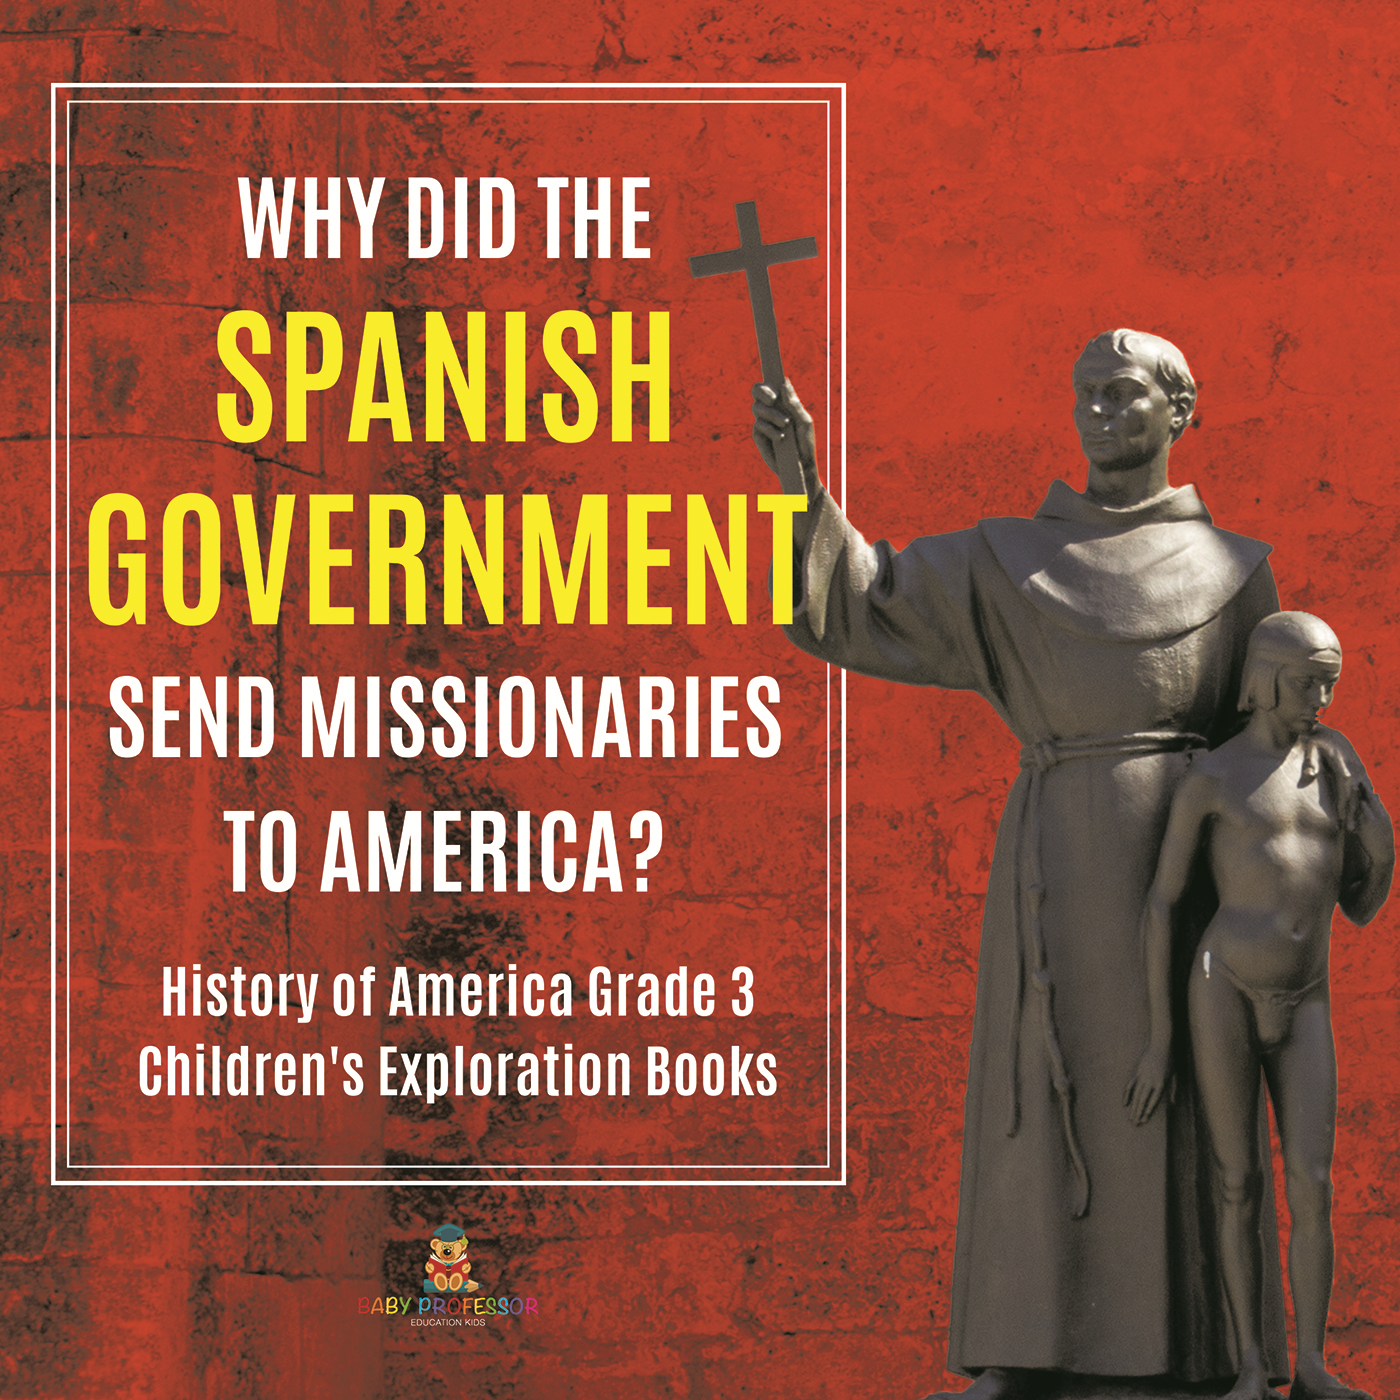 Why Did the Spanish Government Send Missionaries to America? | History of America Grade 3 | Children's Exploration Books